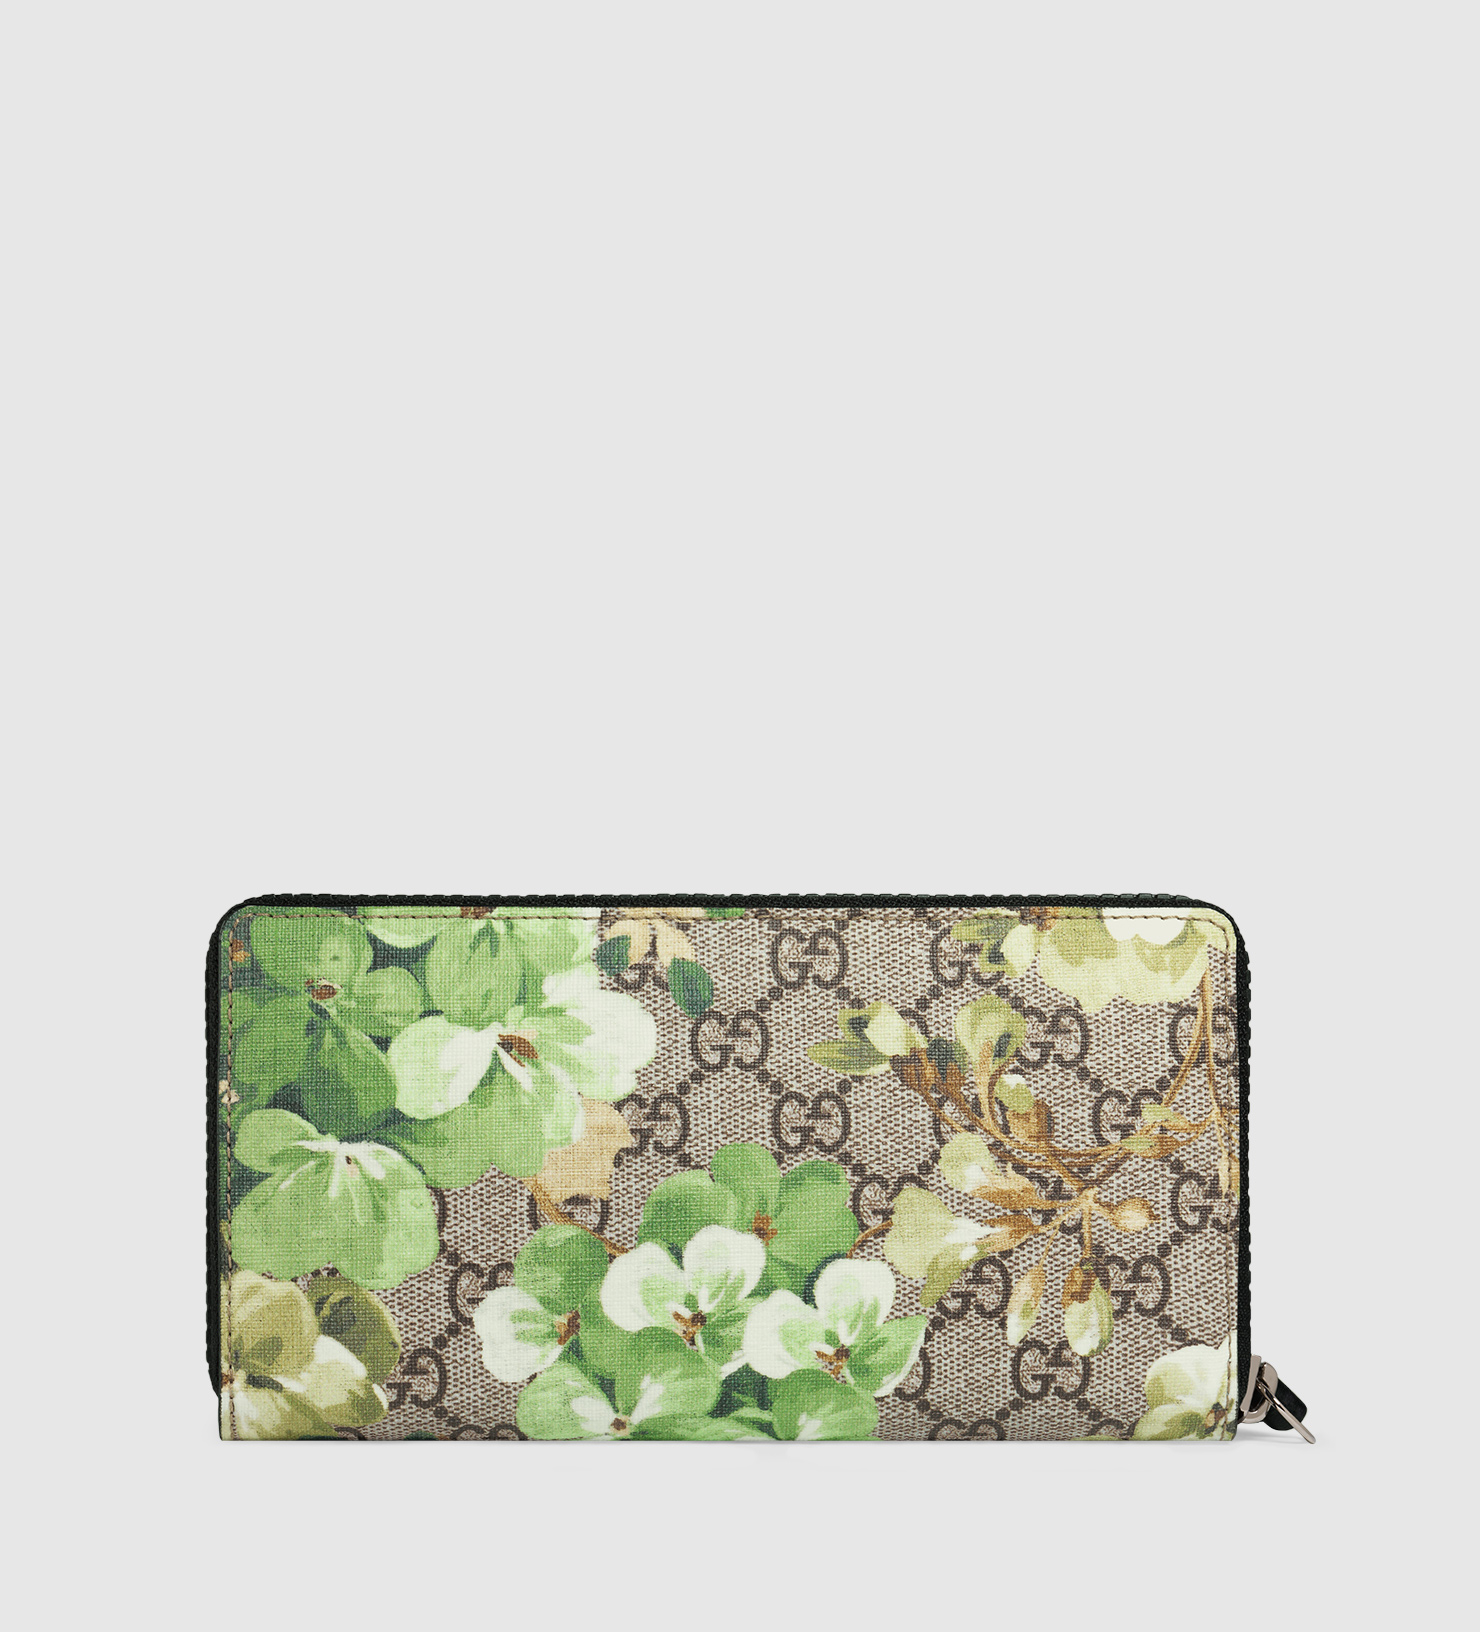 d7d269c7ae5251 Gucci Gg Blooms Zip Around Wallet Green | Stanford Center for ...